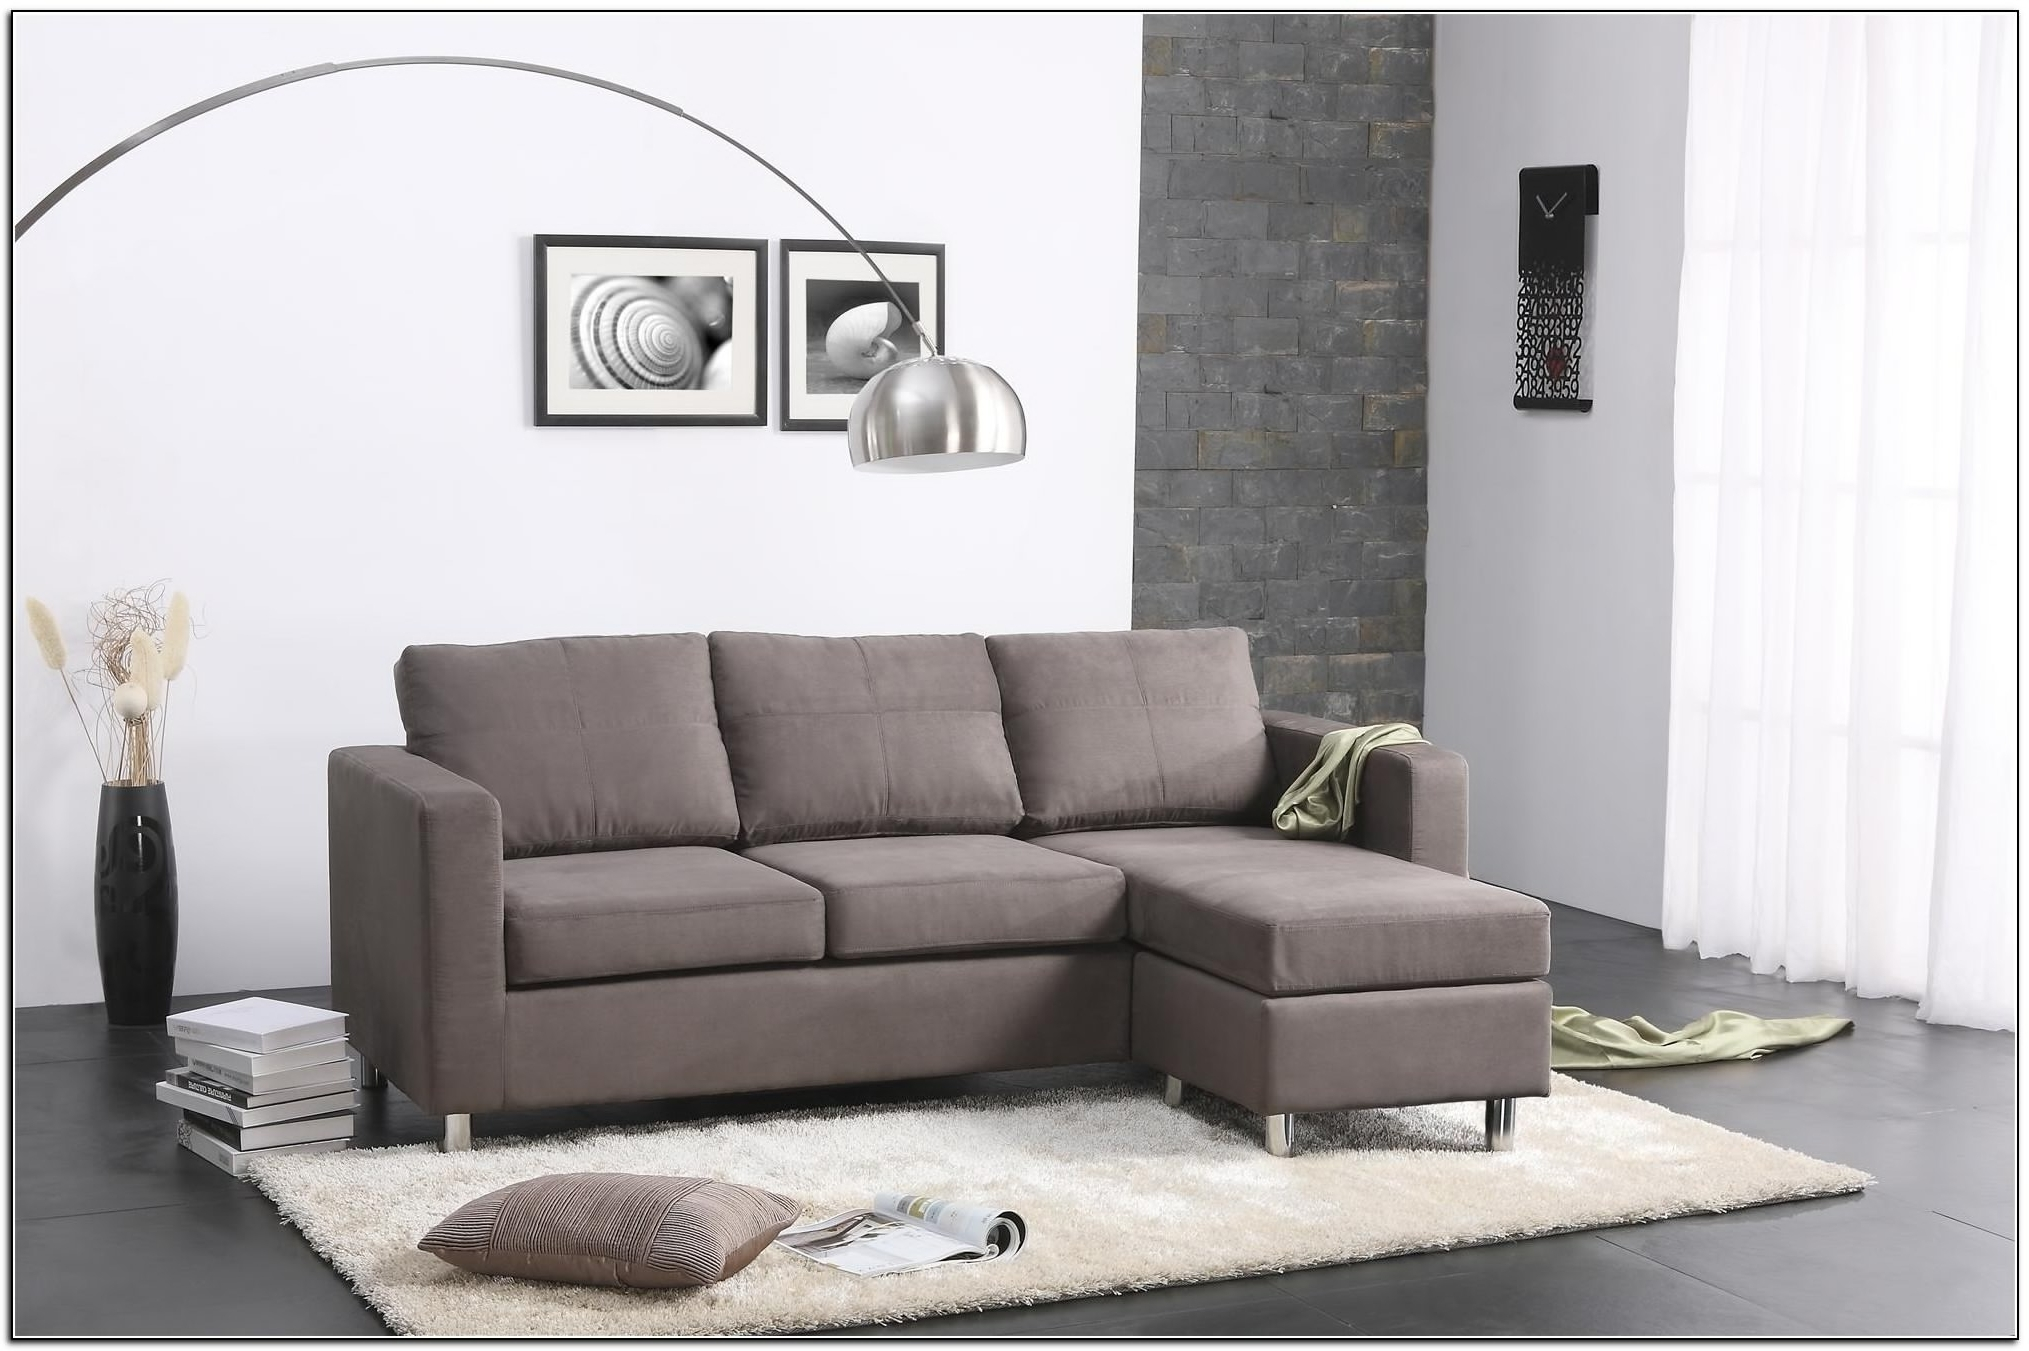 North Carolina Sectional Sofas For Best And Newest Sectional Sofa Design: Small Sectional Sofa Cheap Space Couch (View 8 of 15)